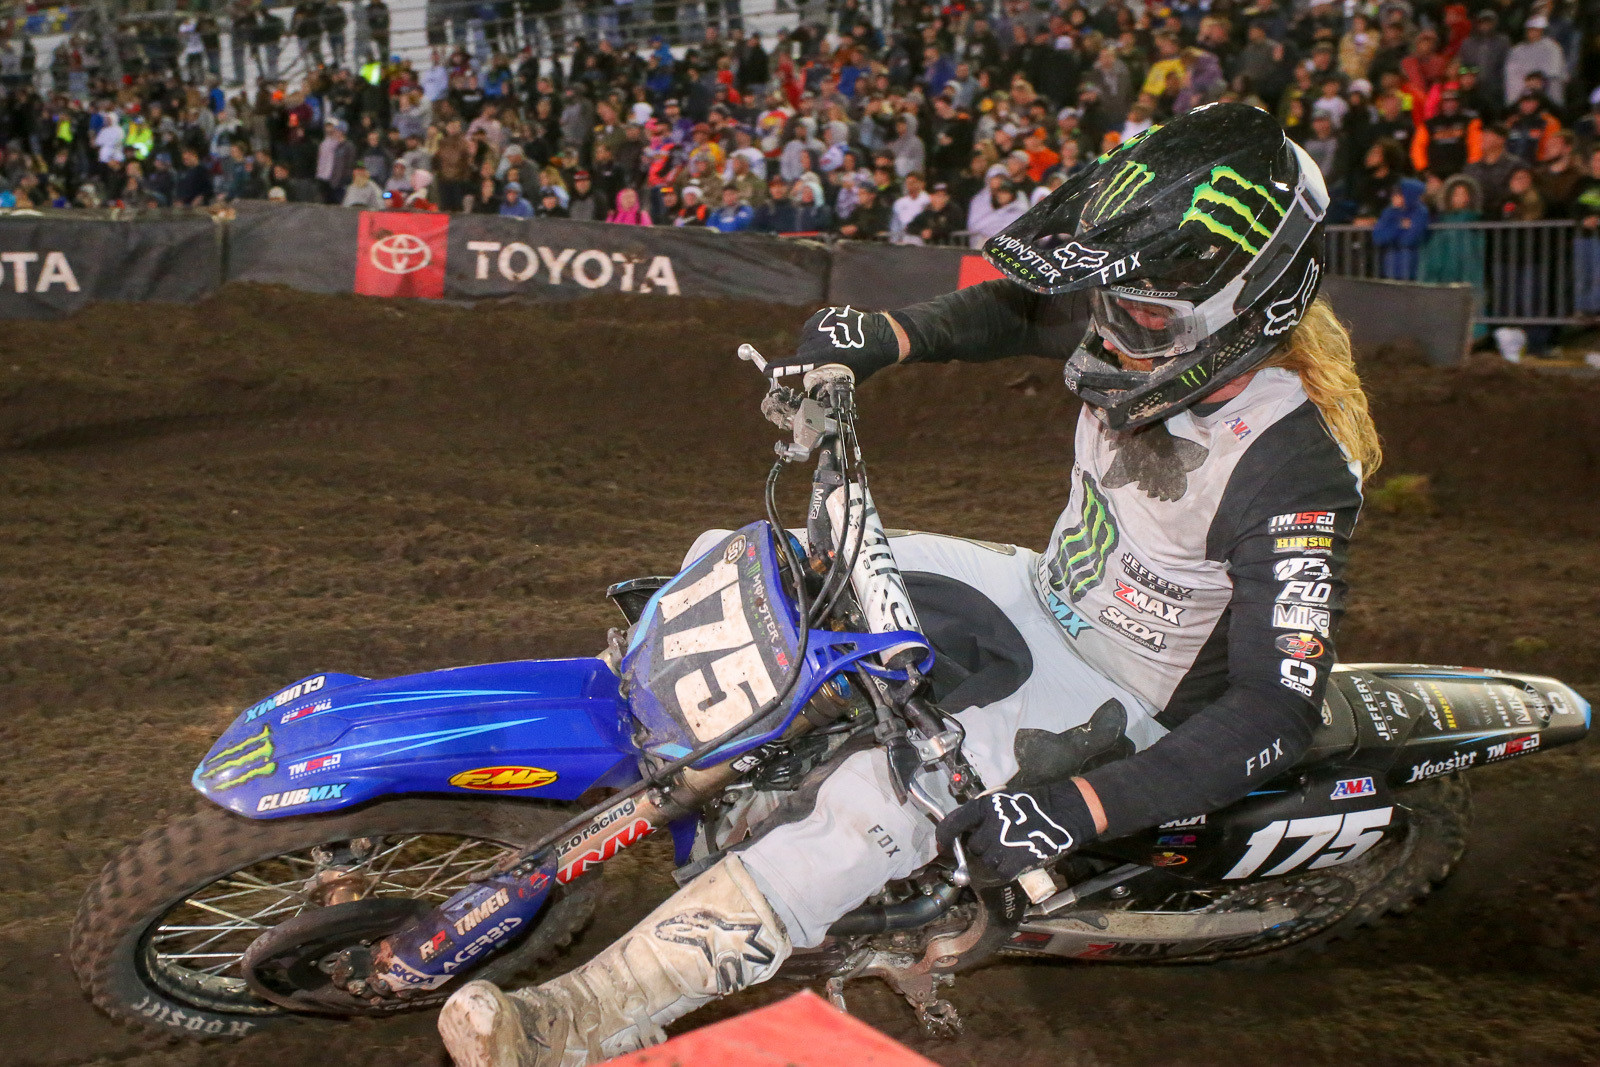 Josh Hill. The fist pump for Garrett Marchbanks as he went by during the main was a nice touch.